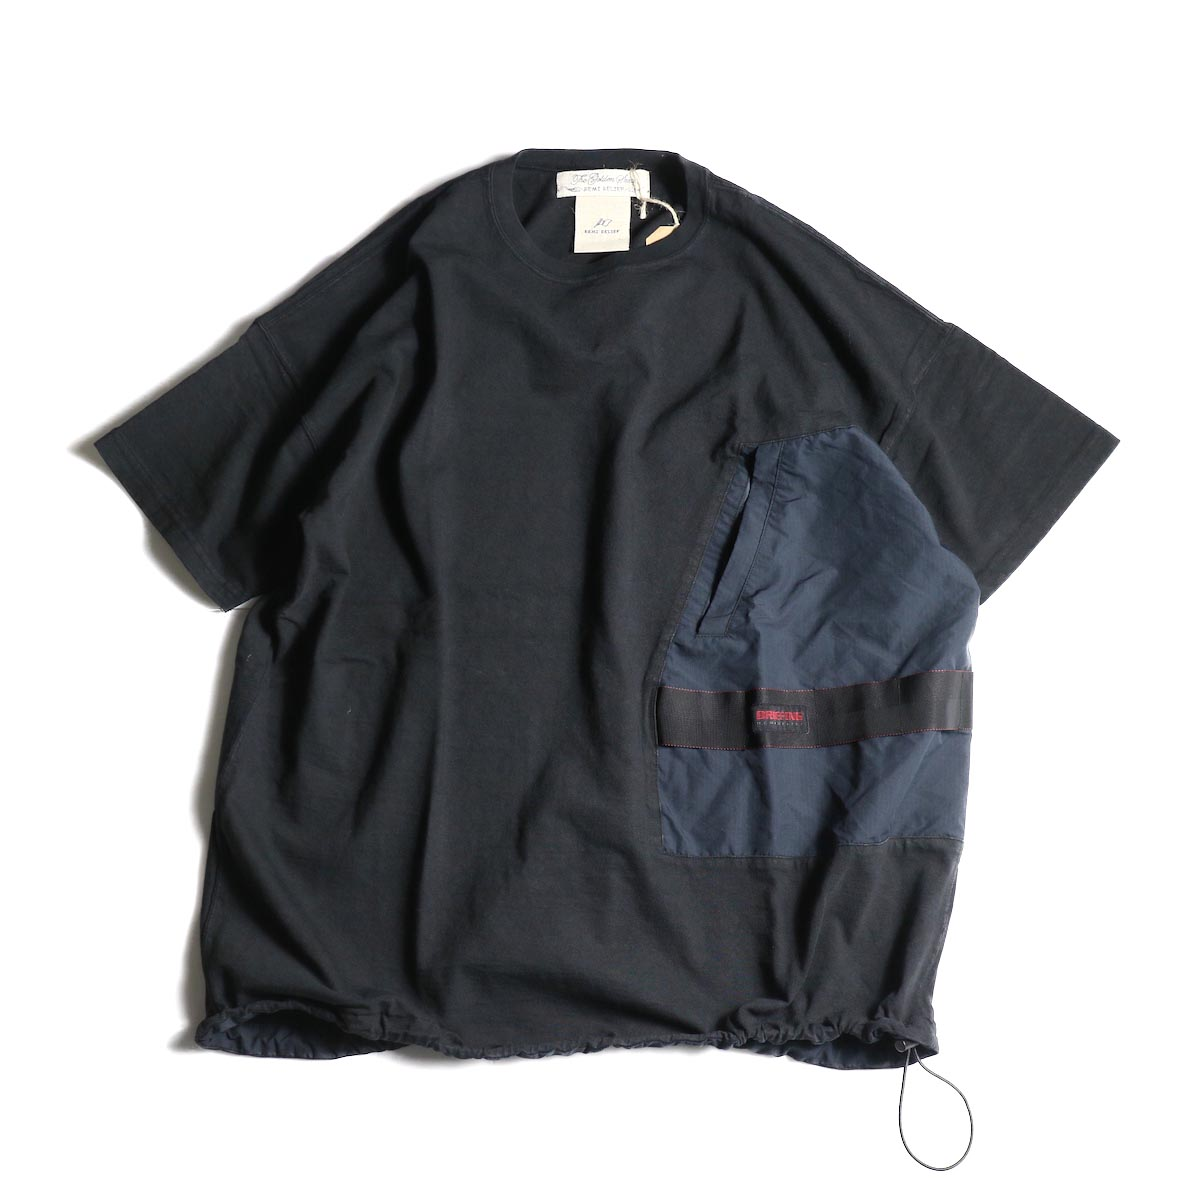 REMI RELIEF × BRIEFING コラボレーションTee ② (Black)